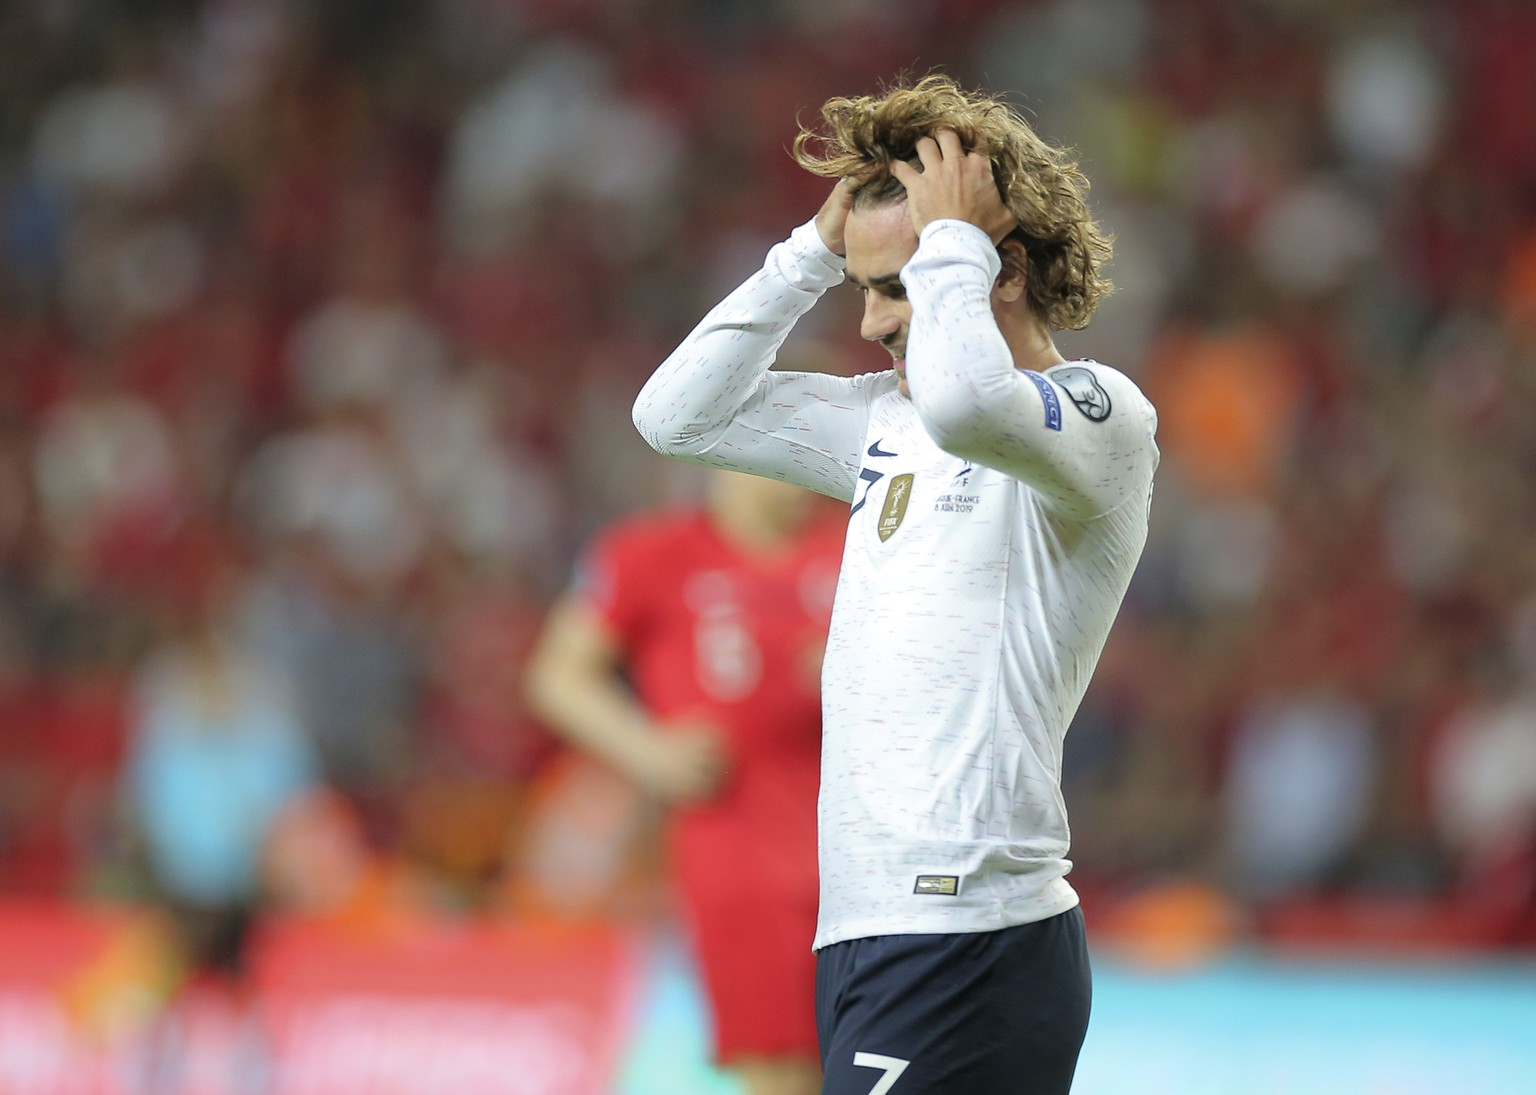 France's forward Antoine Griezmann reacts during the Euro 2020 Group H qualifying soccer match between Turkey and France in Konya, Turkey, Saturday June 8, 2019. (AP Photo)